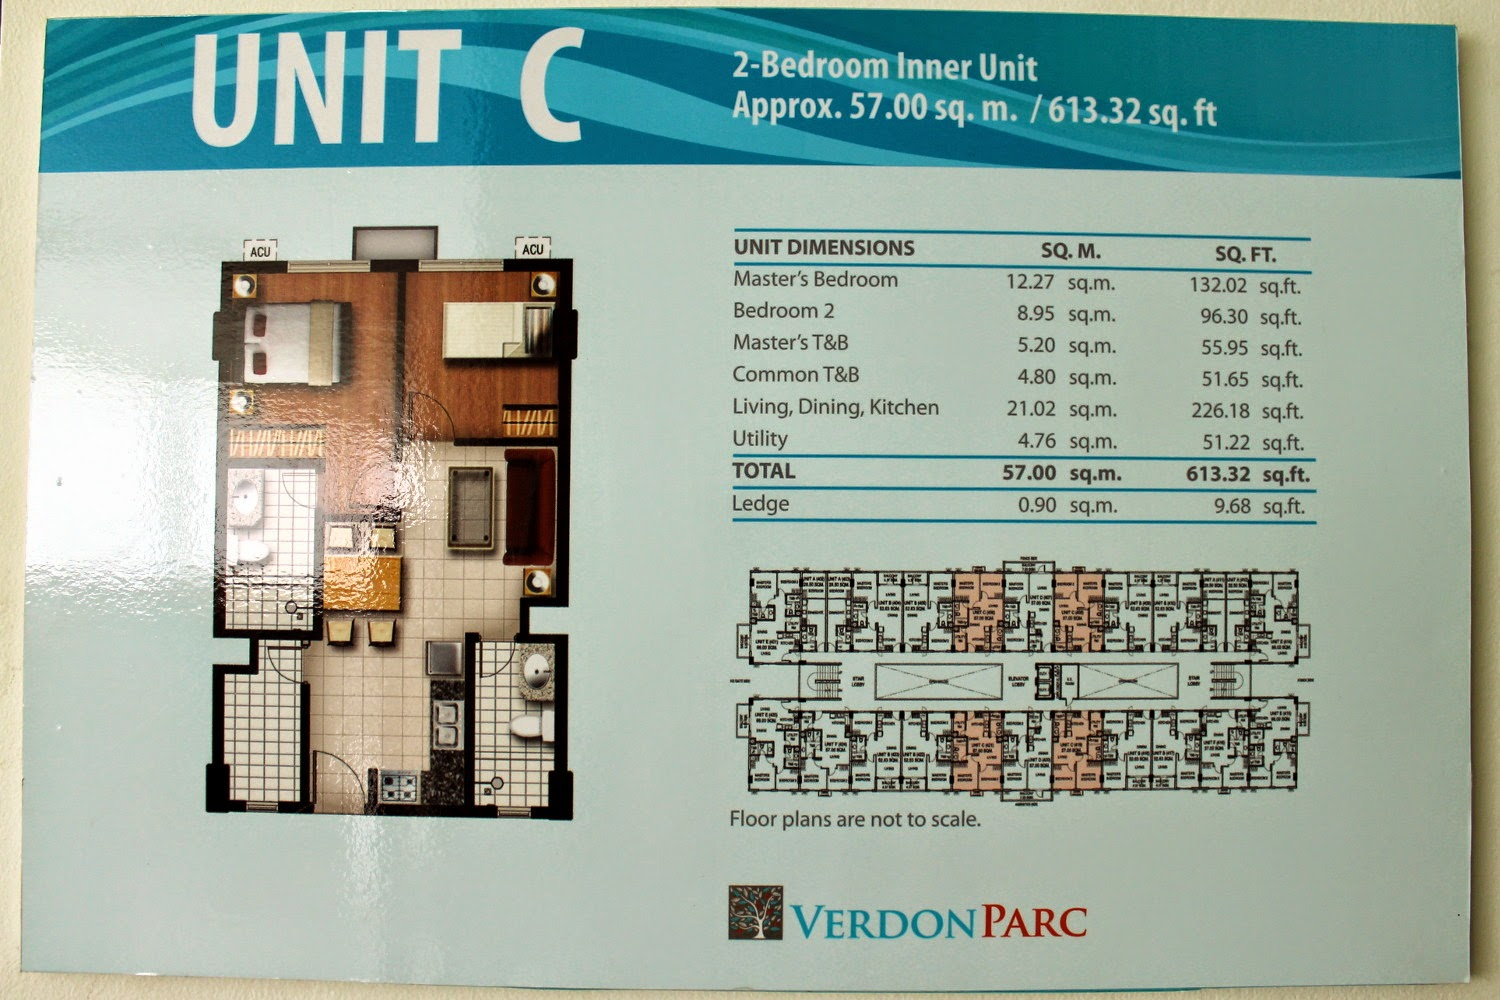 Verdon Parc Unit C (2-Bedroom Inner)